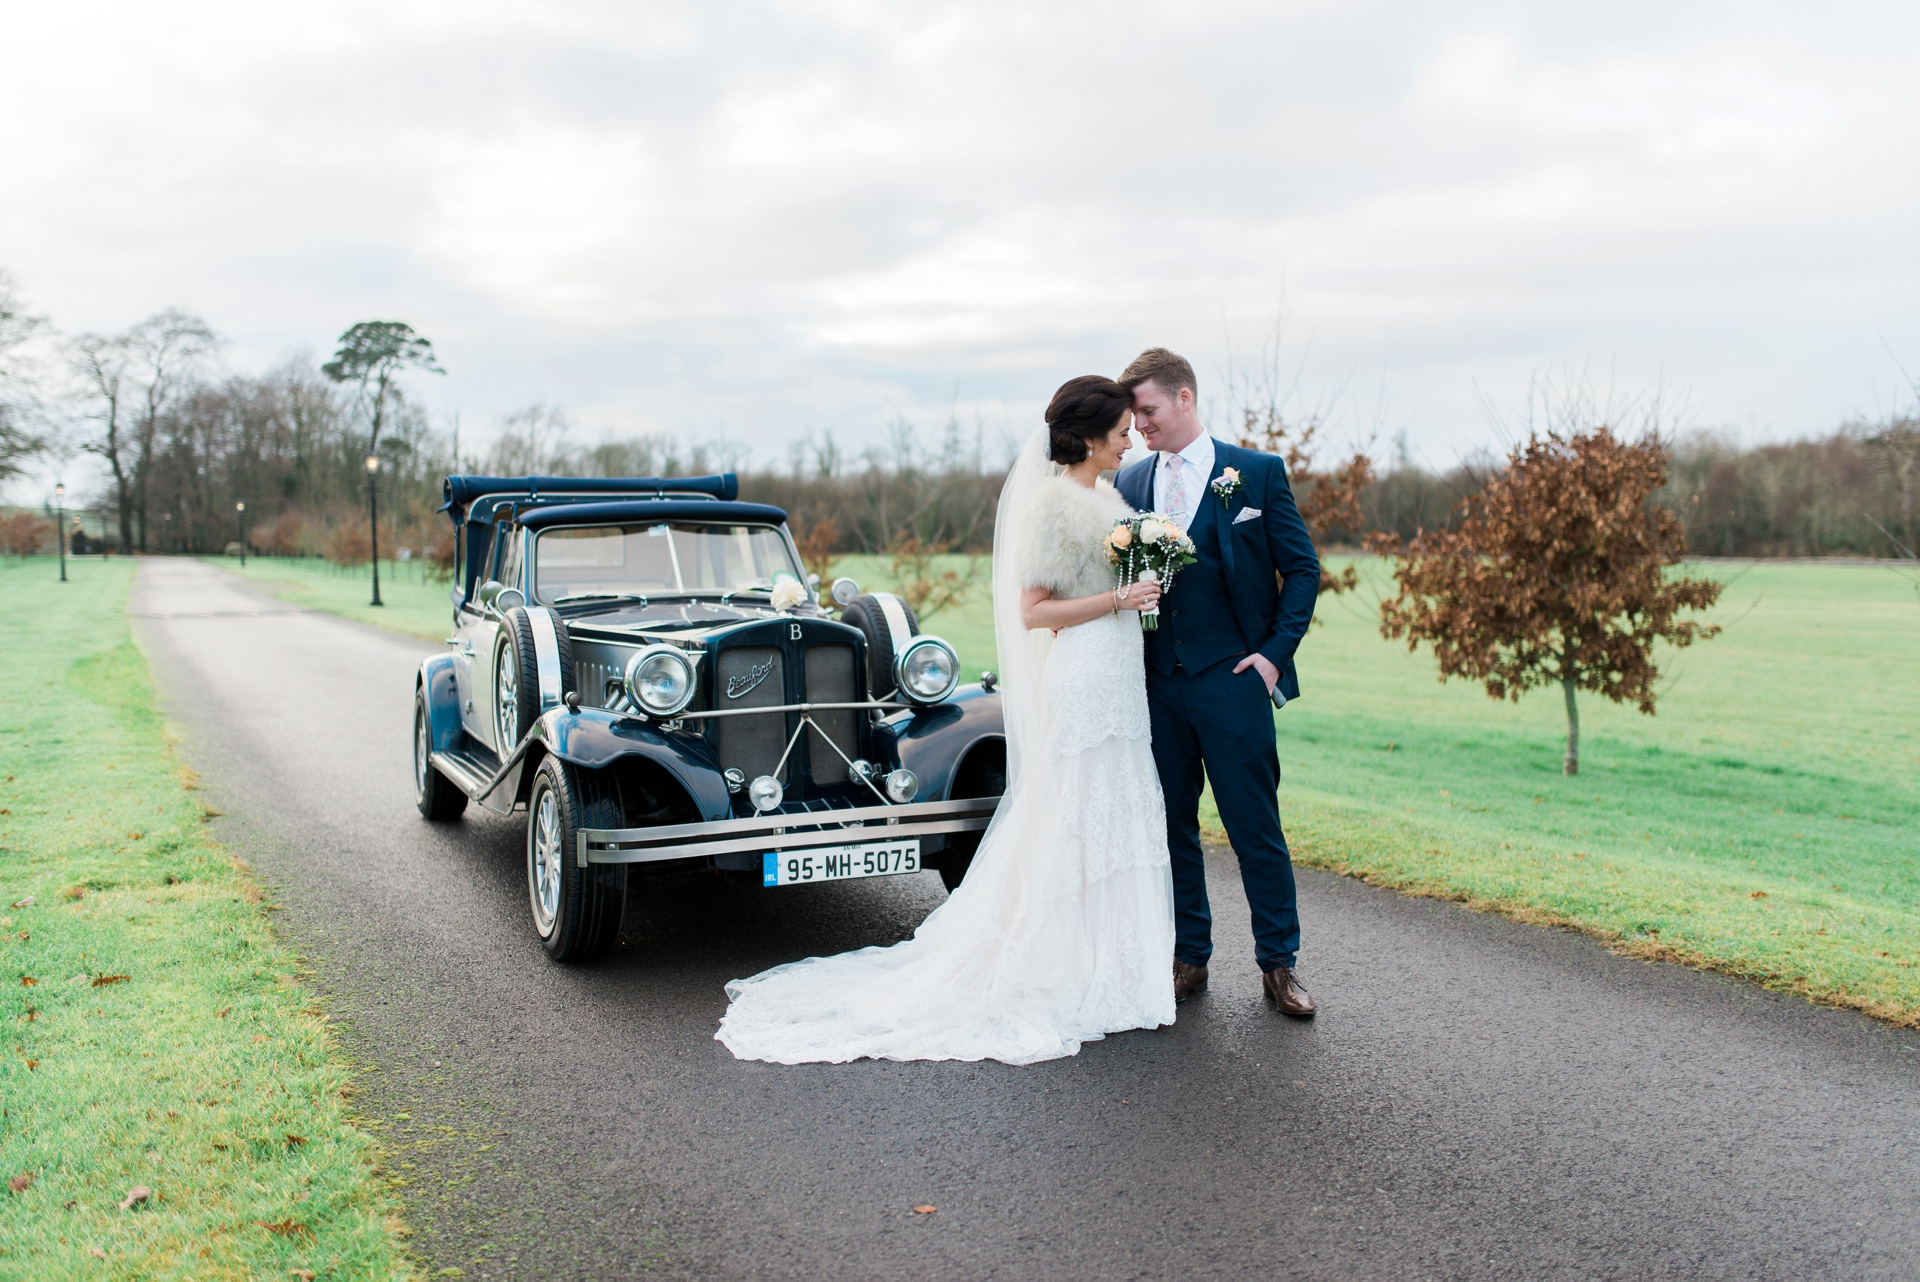 Bride and groom together with vintage car